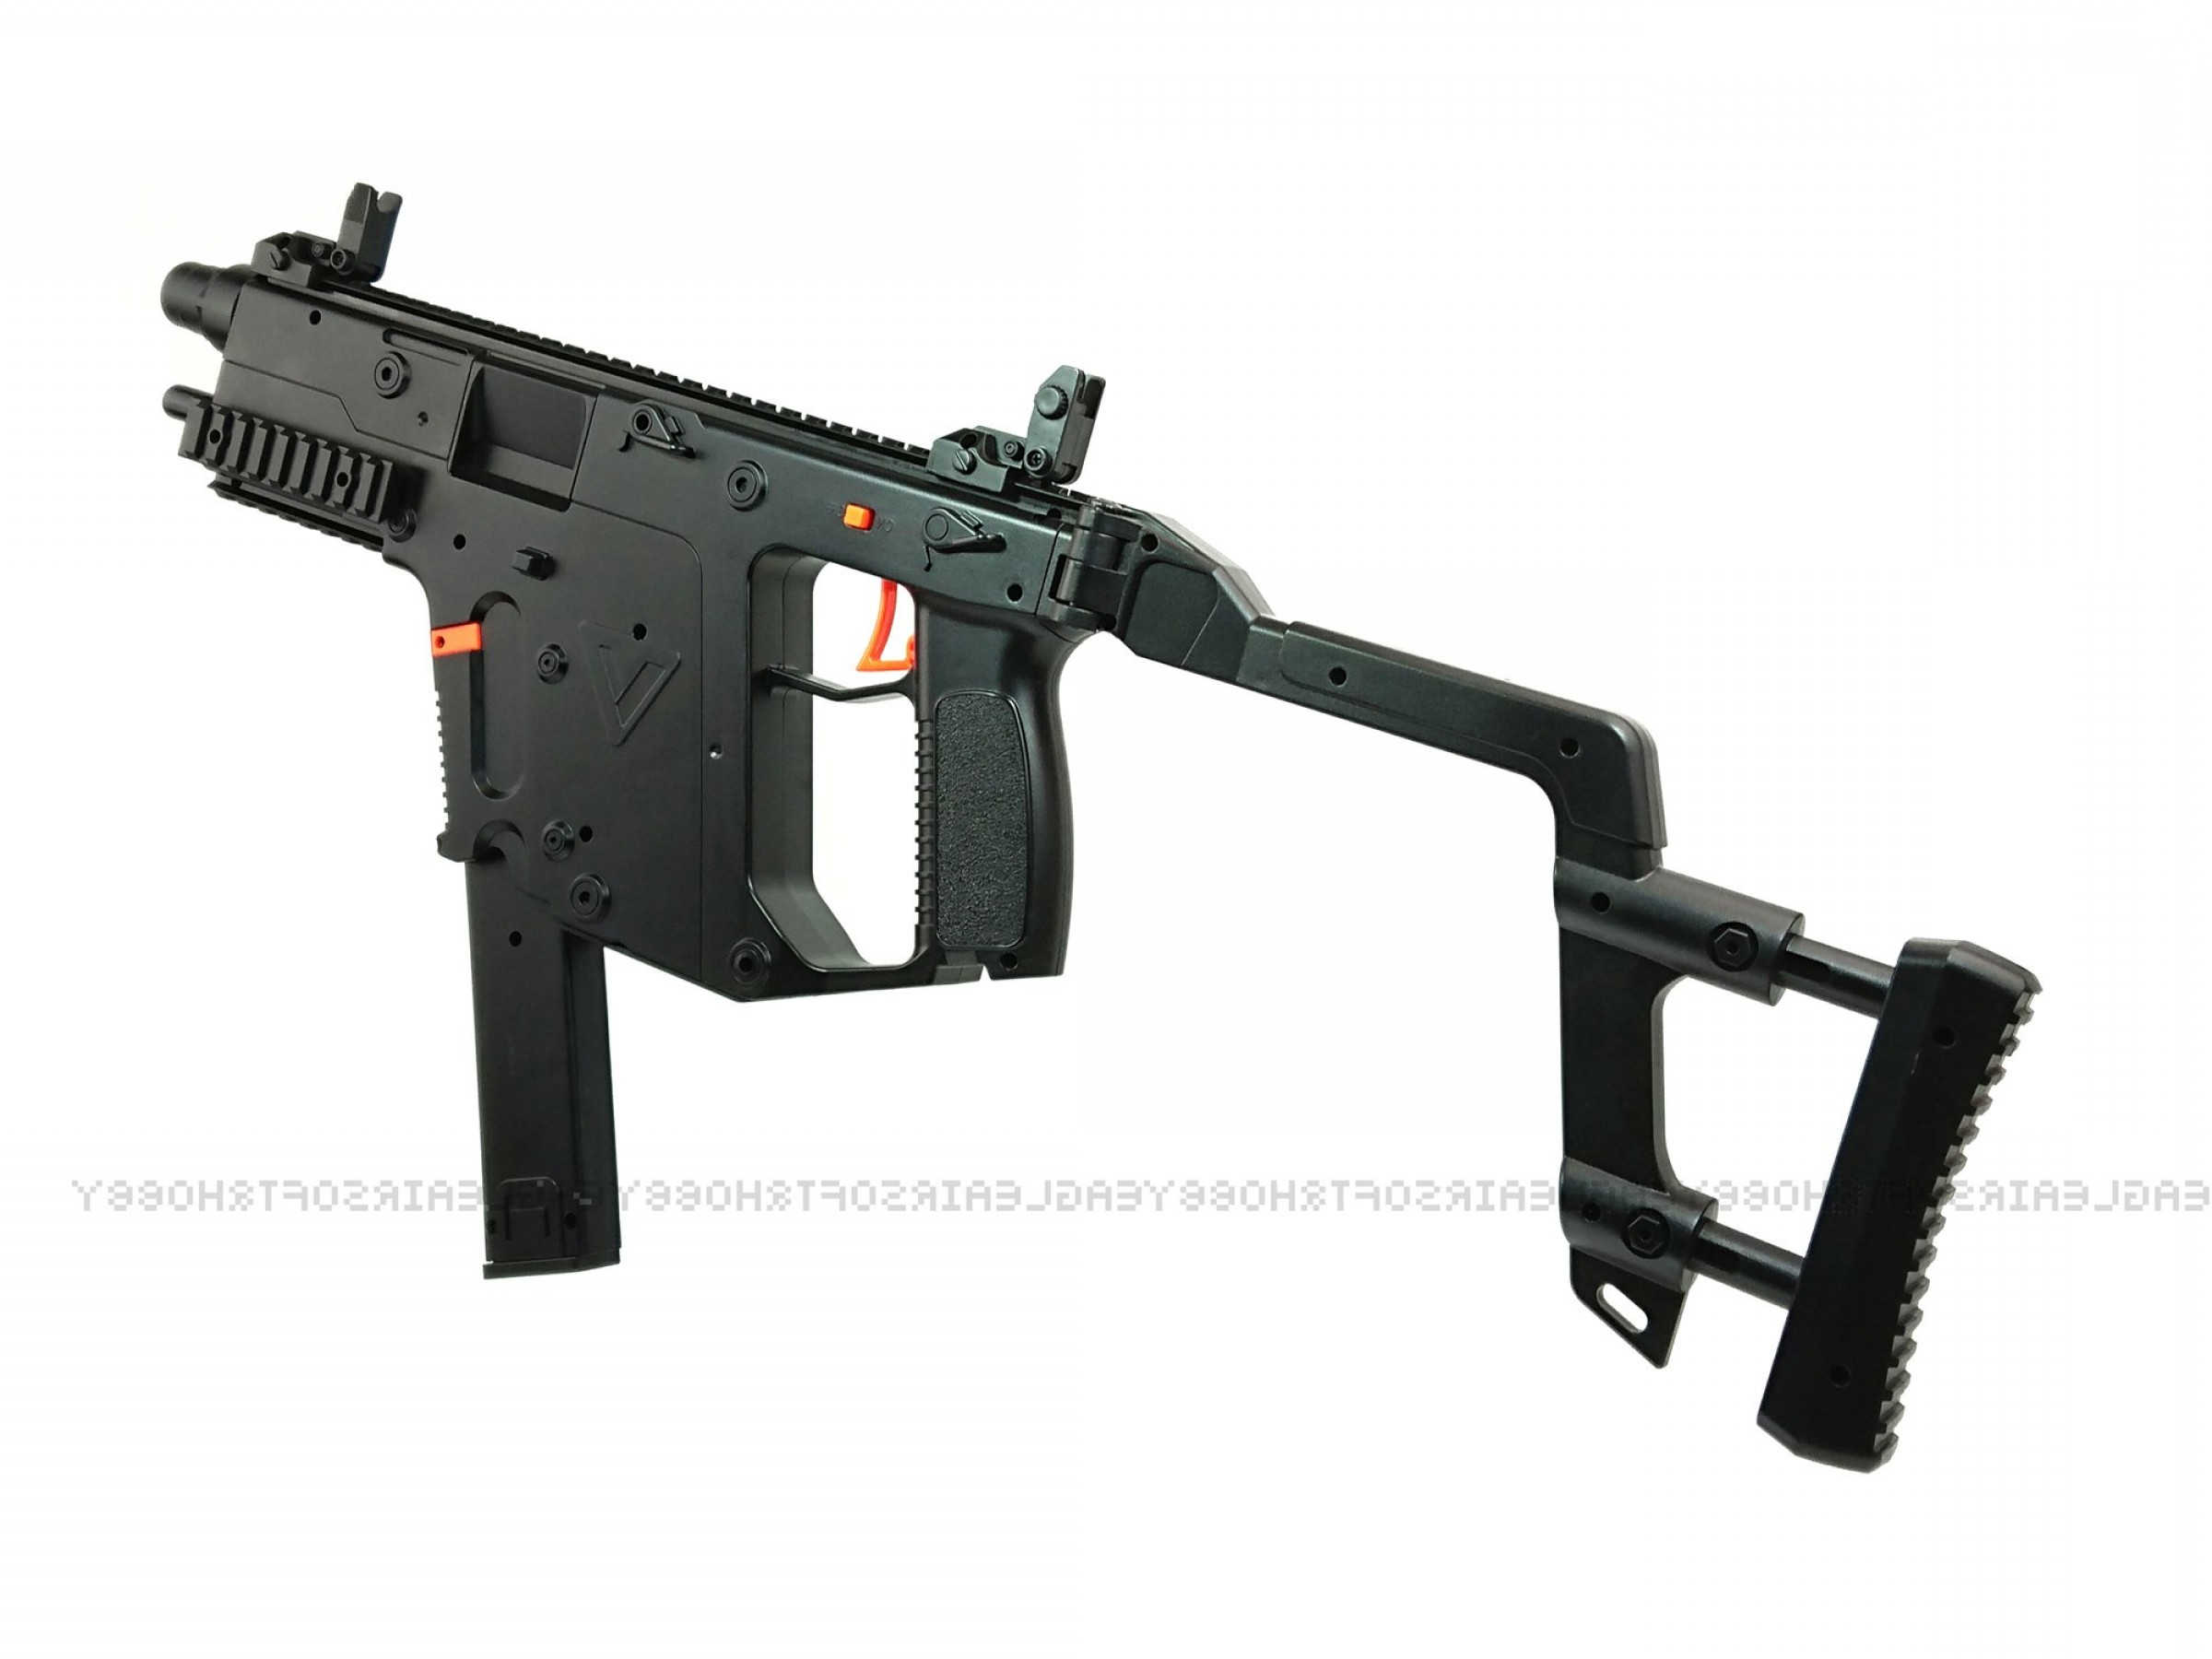 Kriss Vector Specs: Lehui Toys Kriss Vector Electric Automatic Mm Gel Ball Blaster Toy Gunupper Fedsmgbklh